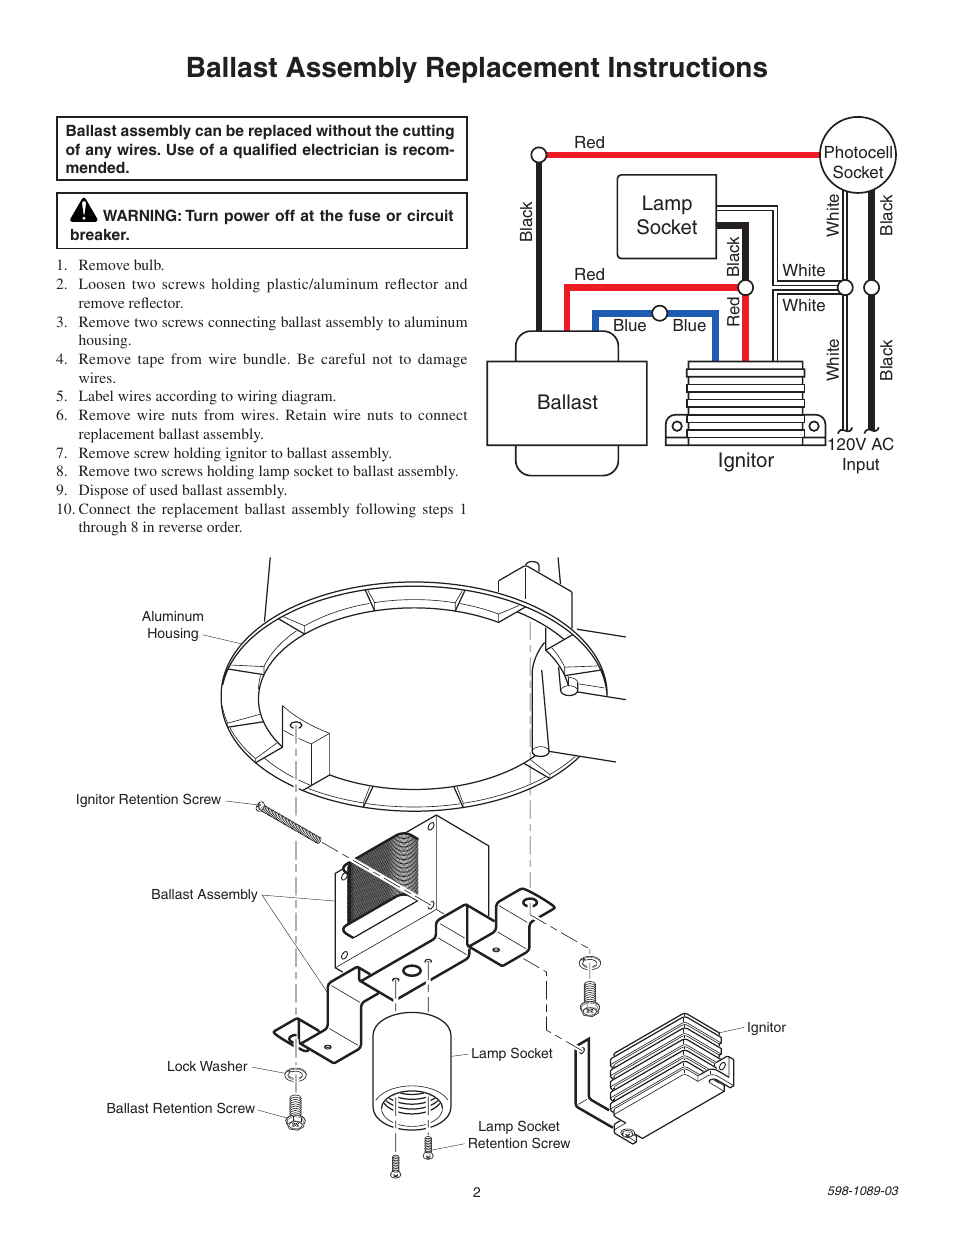 heath zenith high pressure sodium dusk to dawn security light sl 5660 page2 ballast assembly replacement instructions, lamp socket, ballast heath zenith doorbell wiring diagram at bayanpartner.co